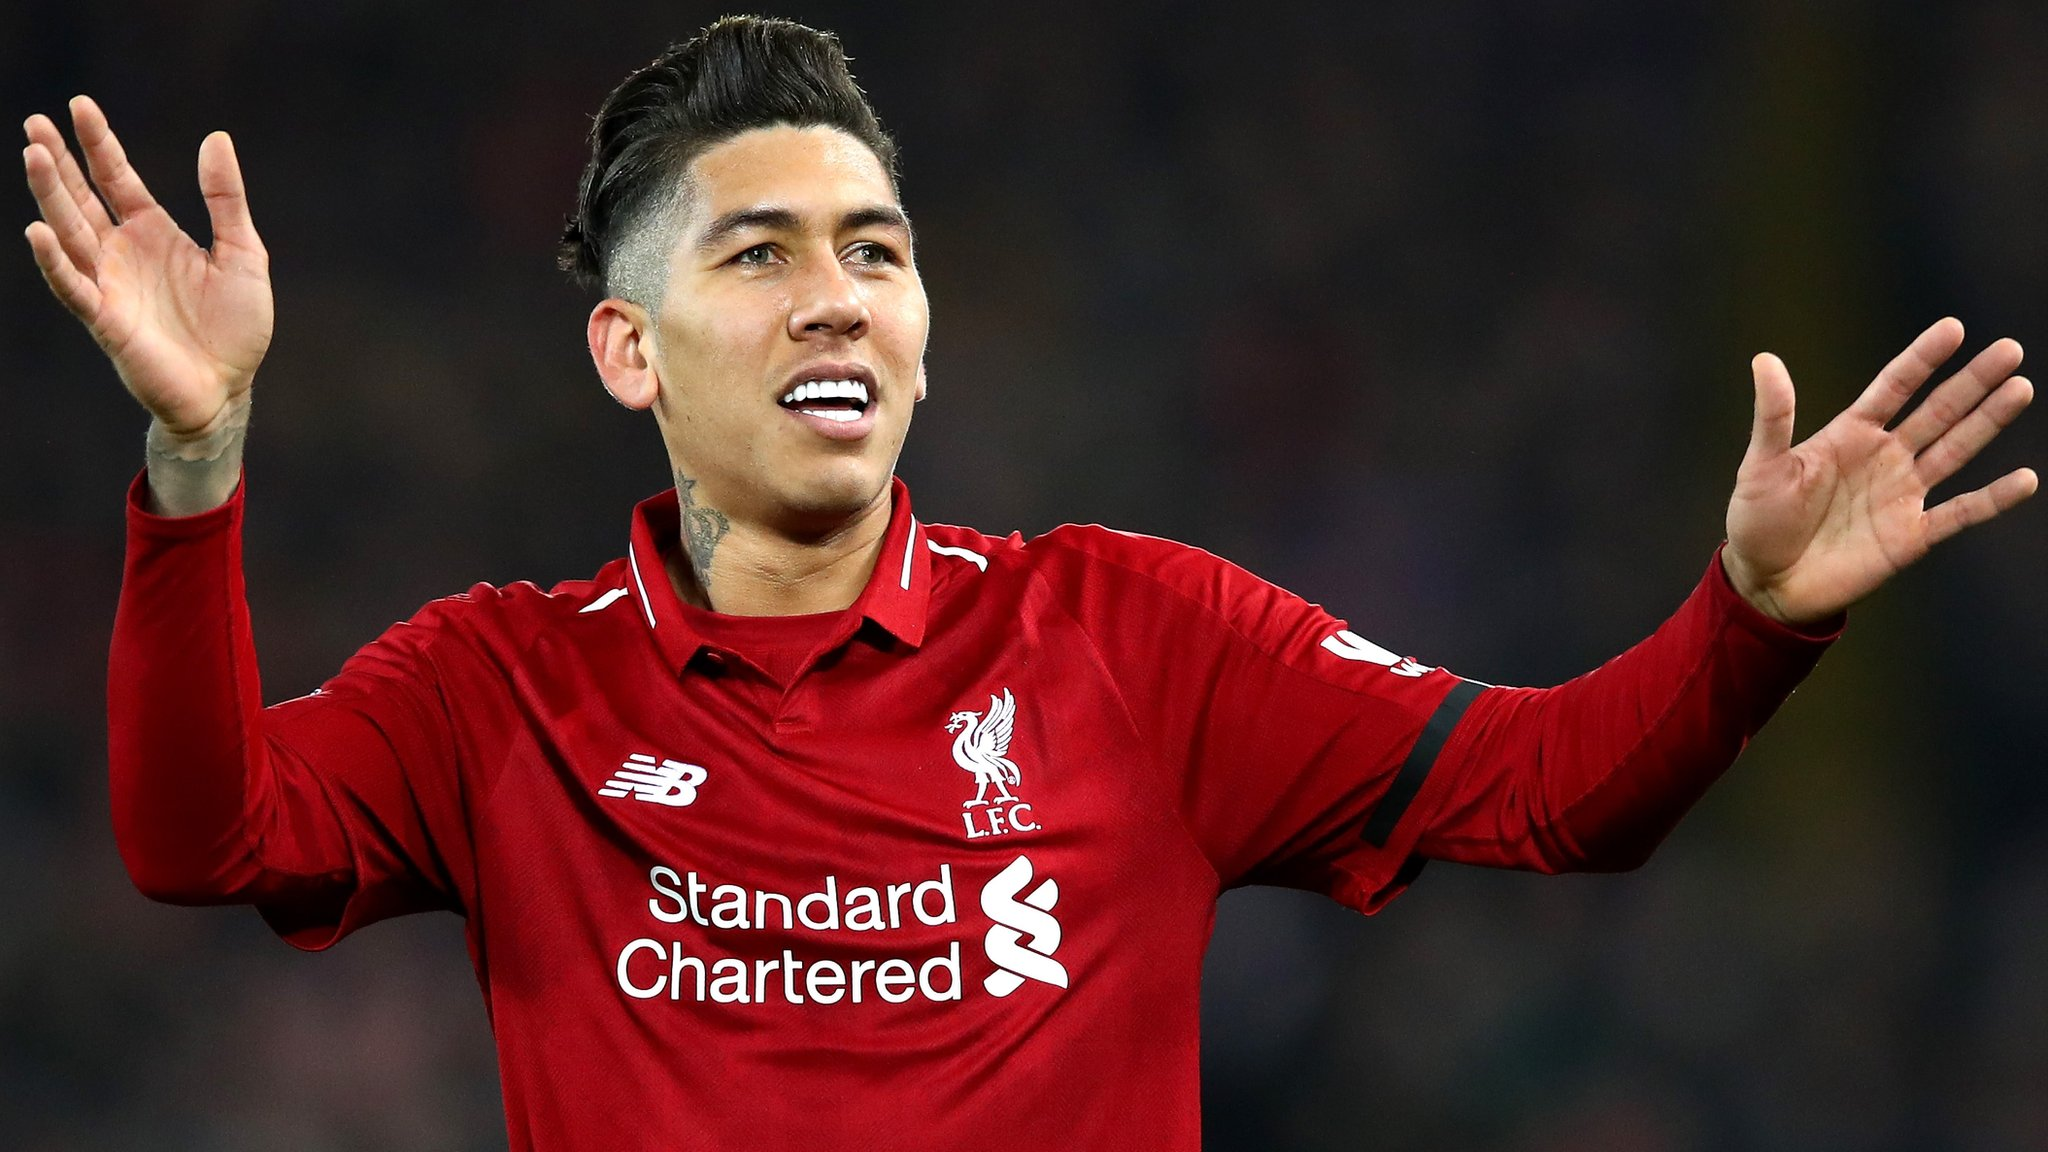 Fulham 1-2 Liverpool: 'Unselfish Firmino needs more chances himself' - Hasselbaink